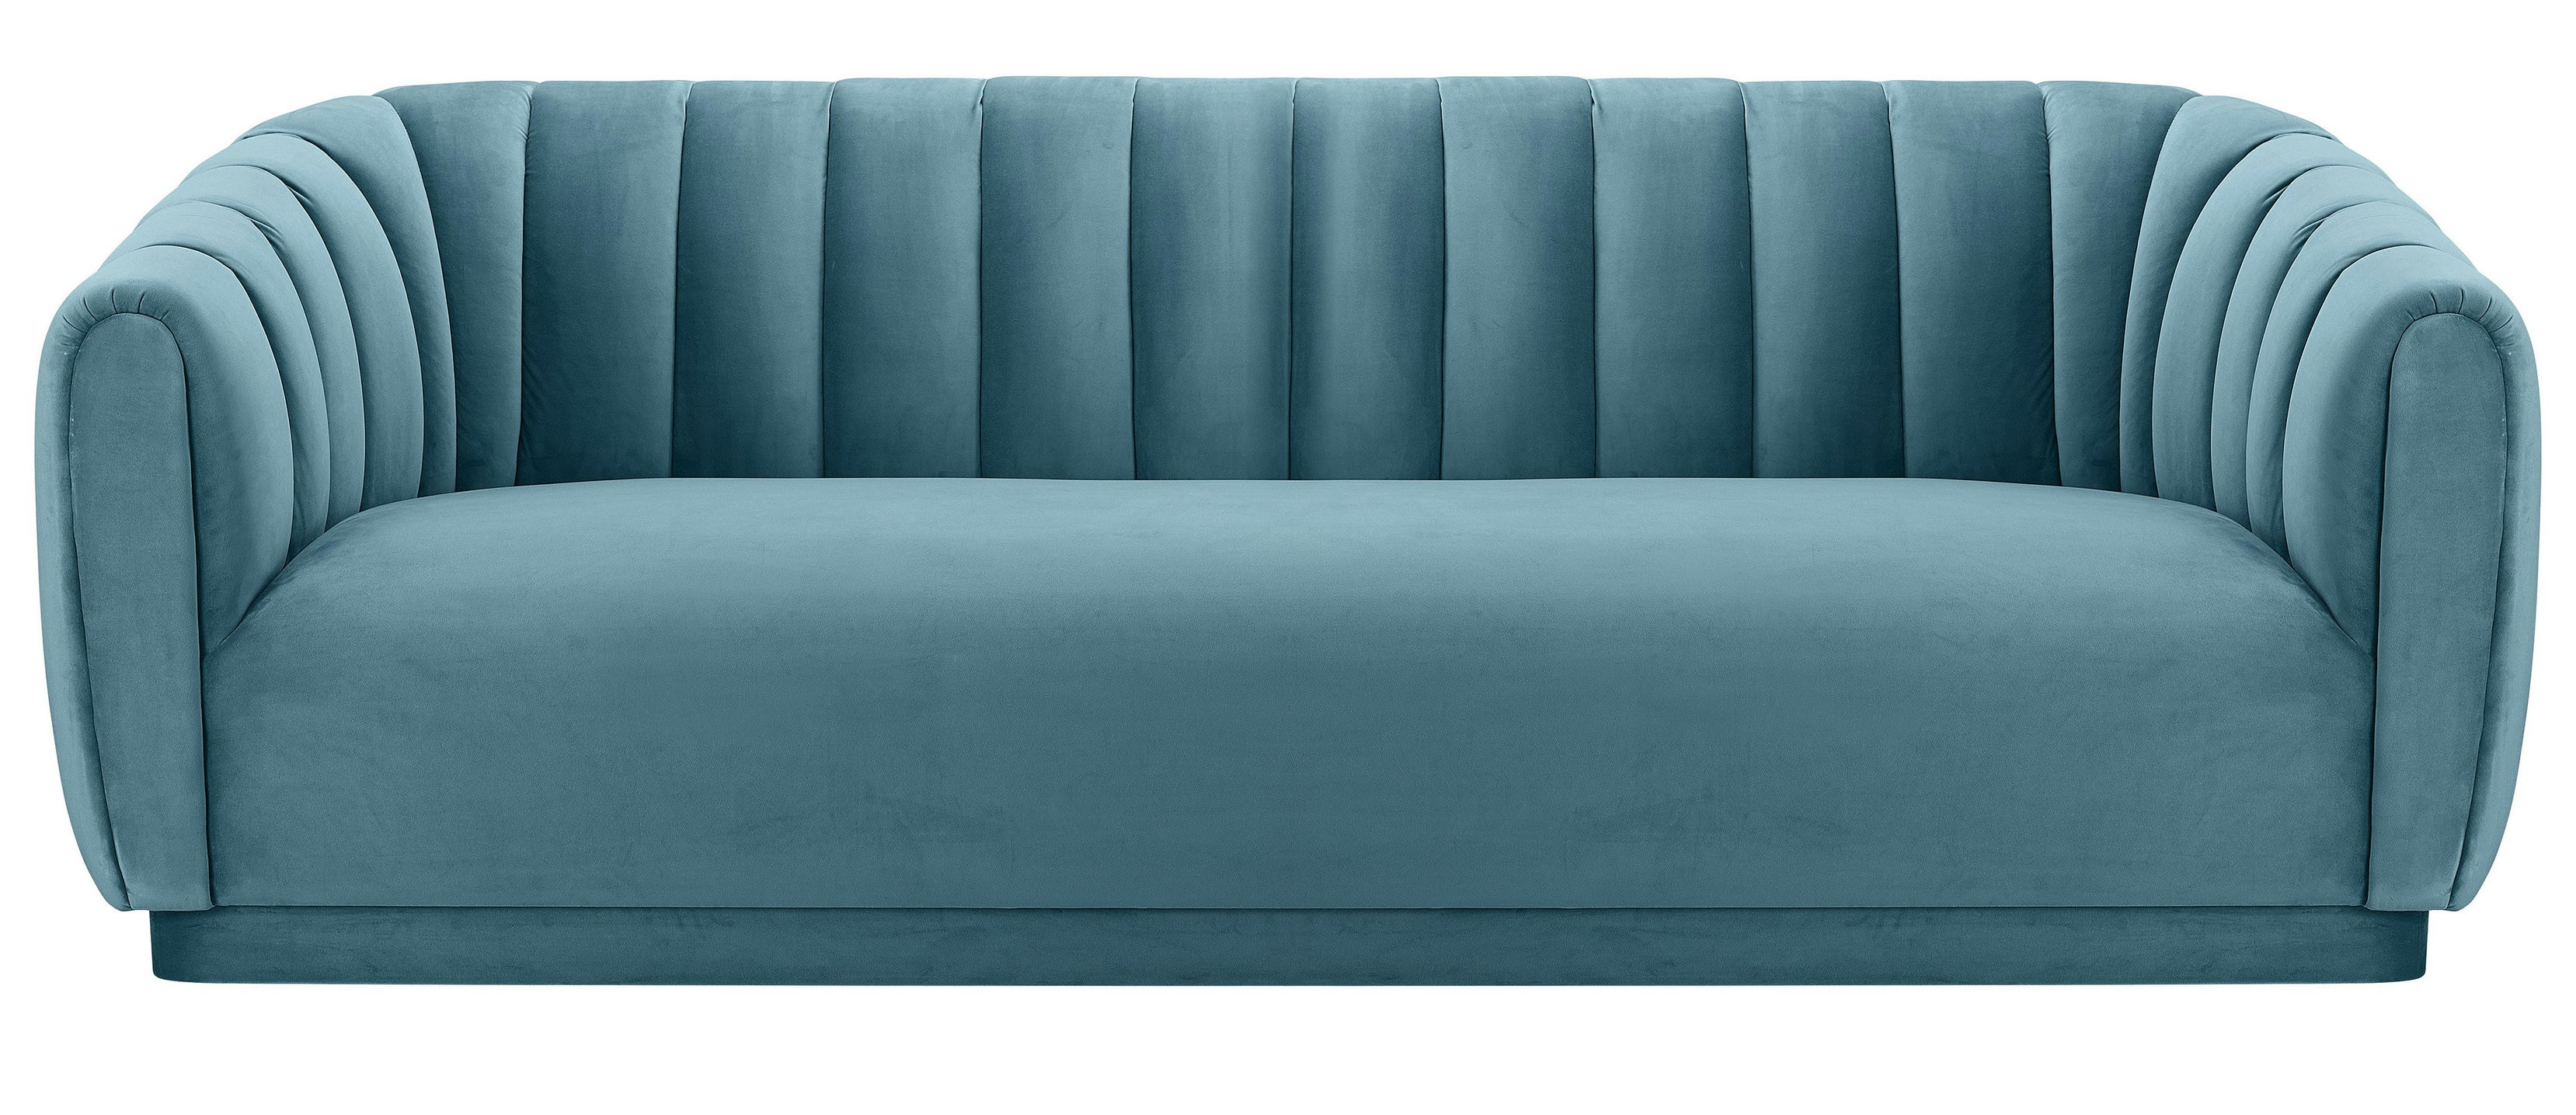 Marissa Velvet Sofa, Sea Blue Pertaining To Marissa Sofa Chairs (View 9 of 25)